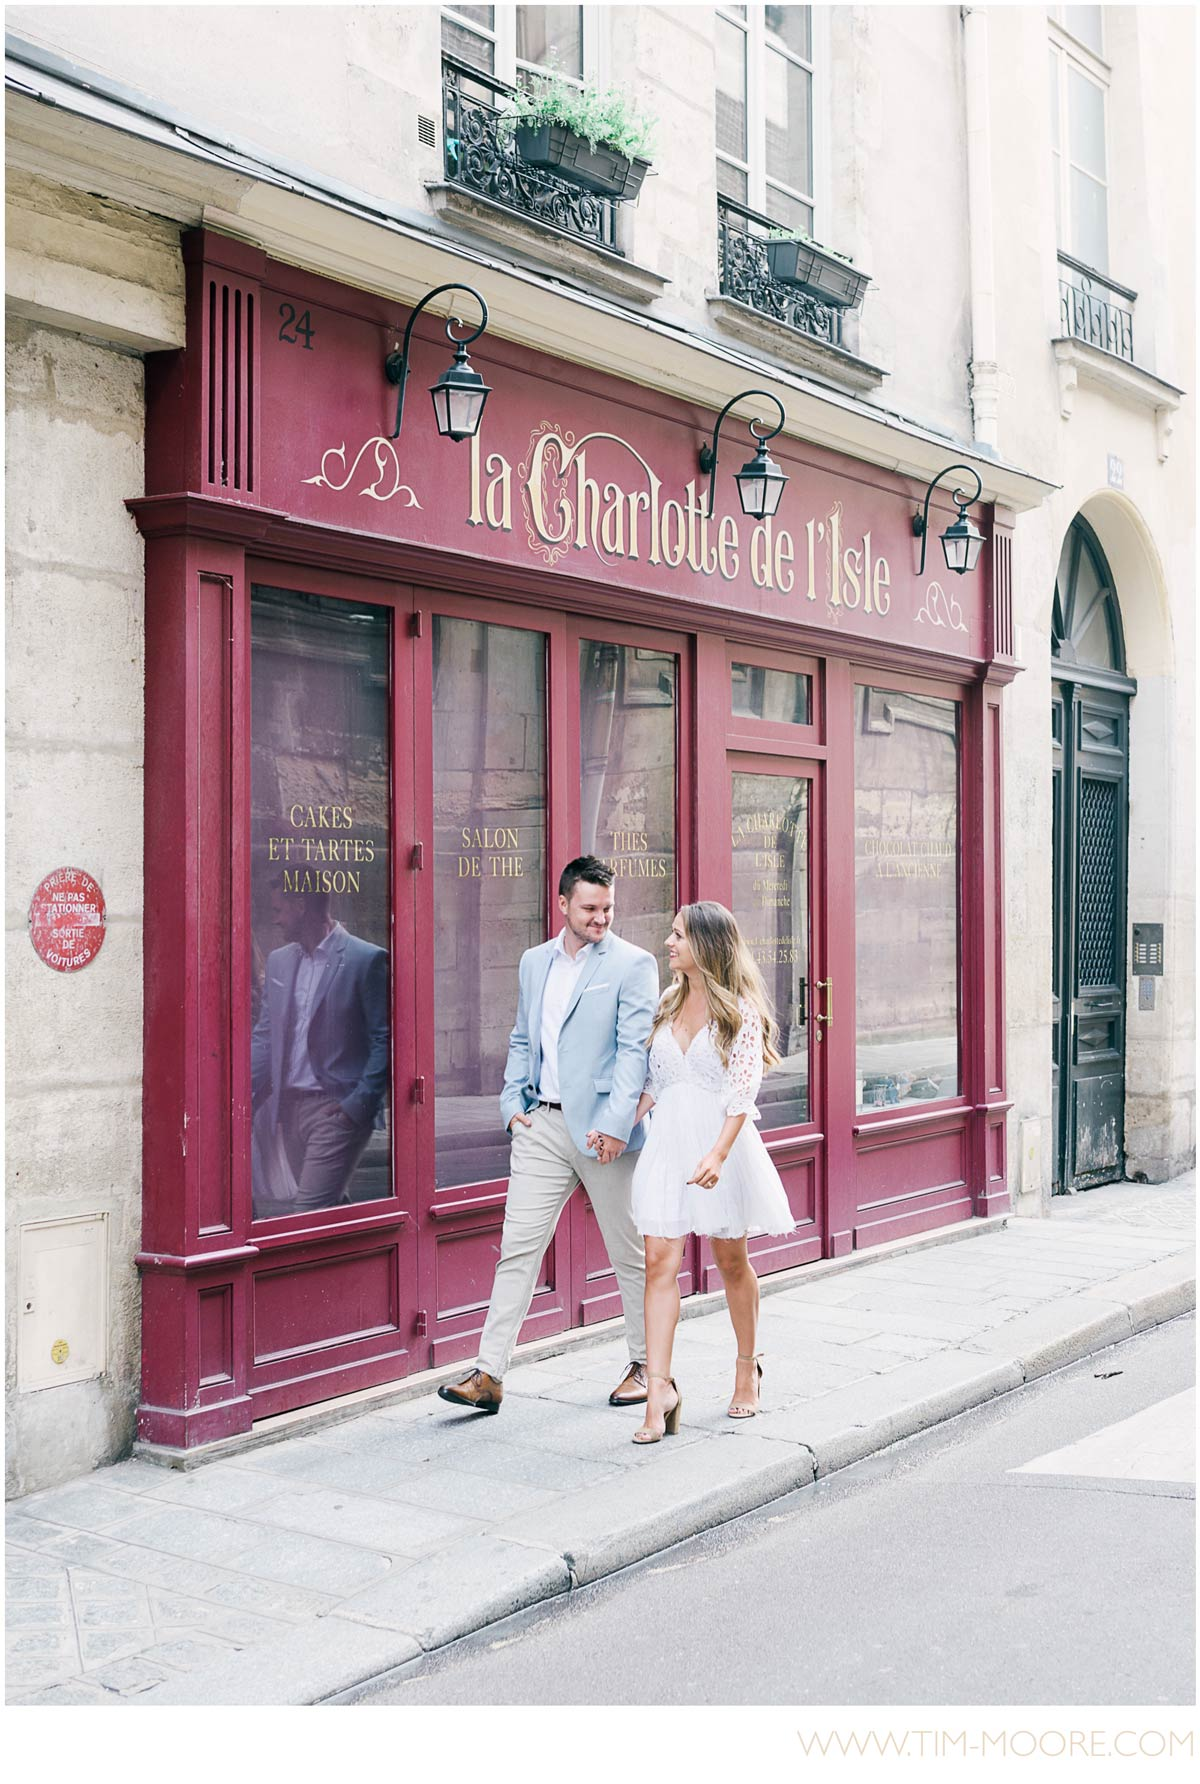 Paris Photographer - Engagement photo shoot in Paris wandering in an authentic Parisian neighborhood